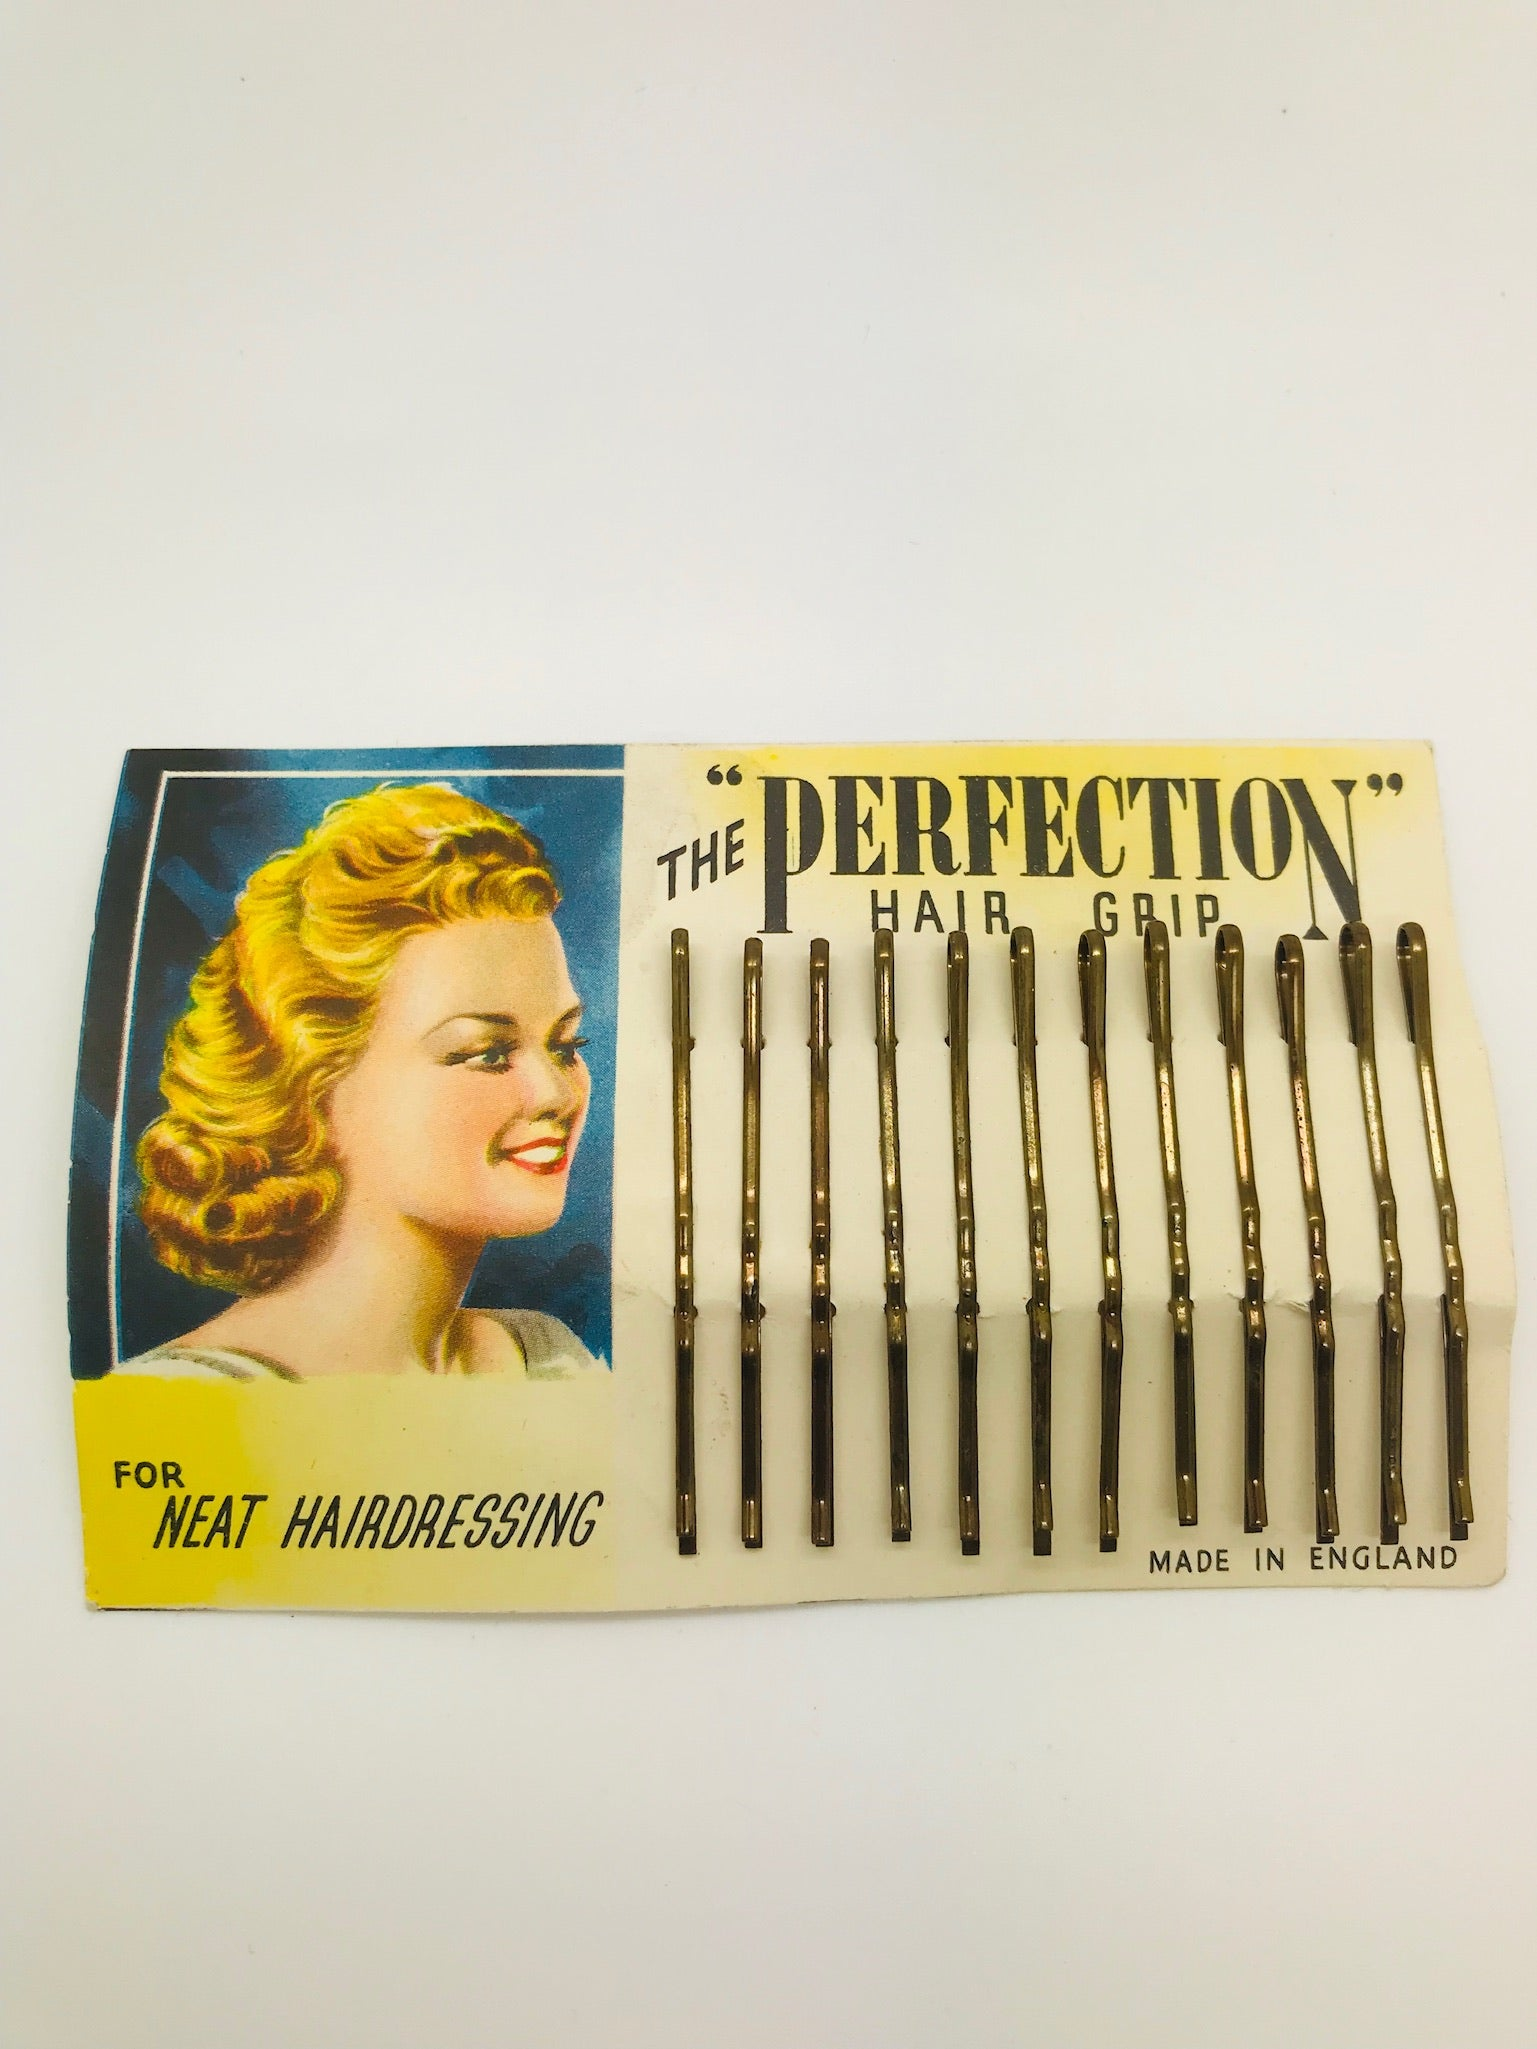 1940s Hair Snoods- Buy, Knit, Crochet or Sew a Snood Authentic Vintage 1940s-50s Set Of 12 Bobby Pins Hairclips on Original Backing Display Card £2.99 AT vintagedancer.com